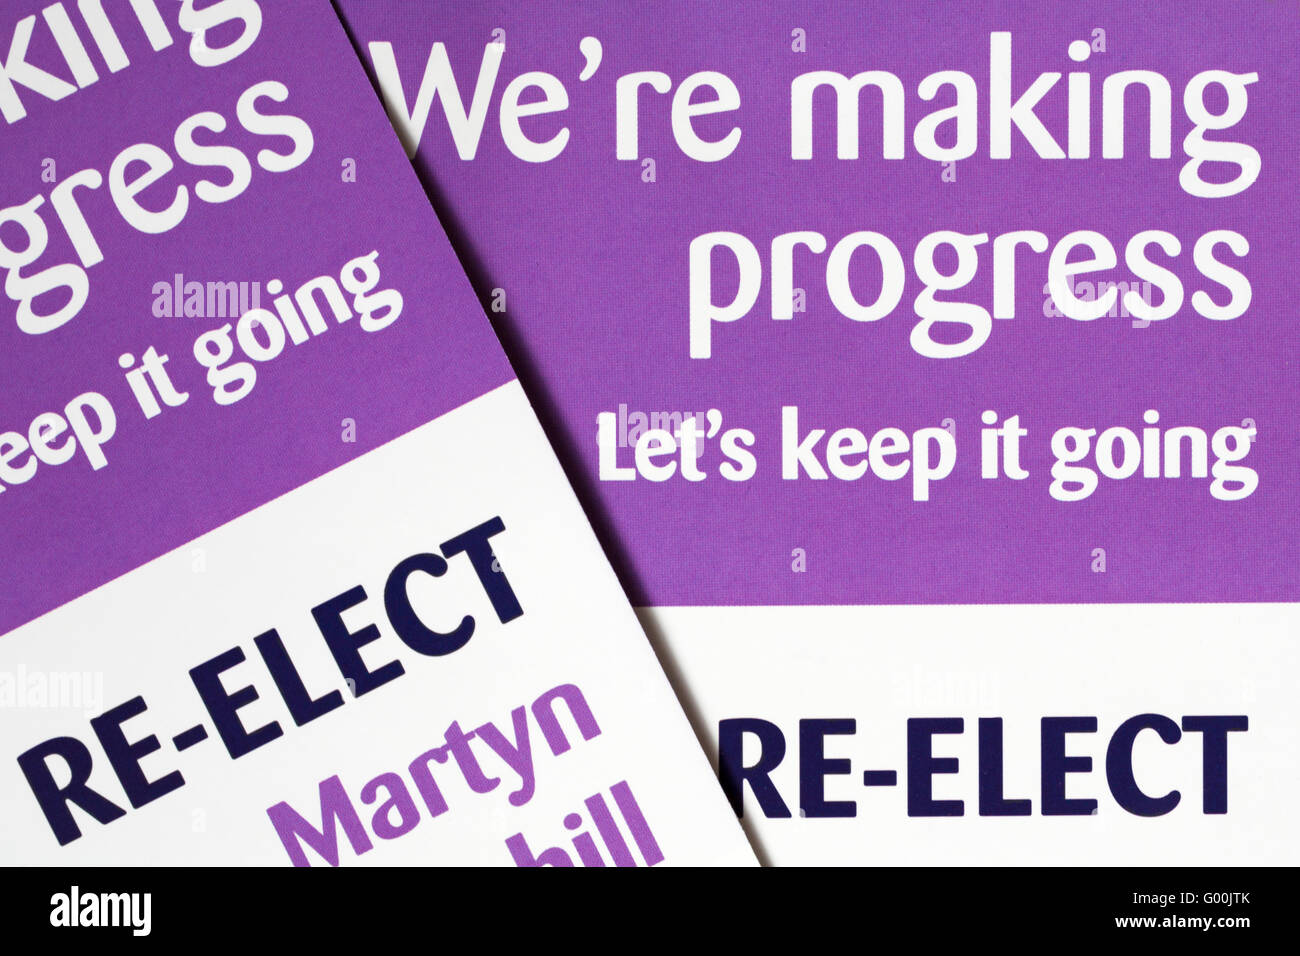 We're making progress let's keep it going info on leaflet to re-elect Martyn Underhill as Police & Crime - Stock Image